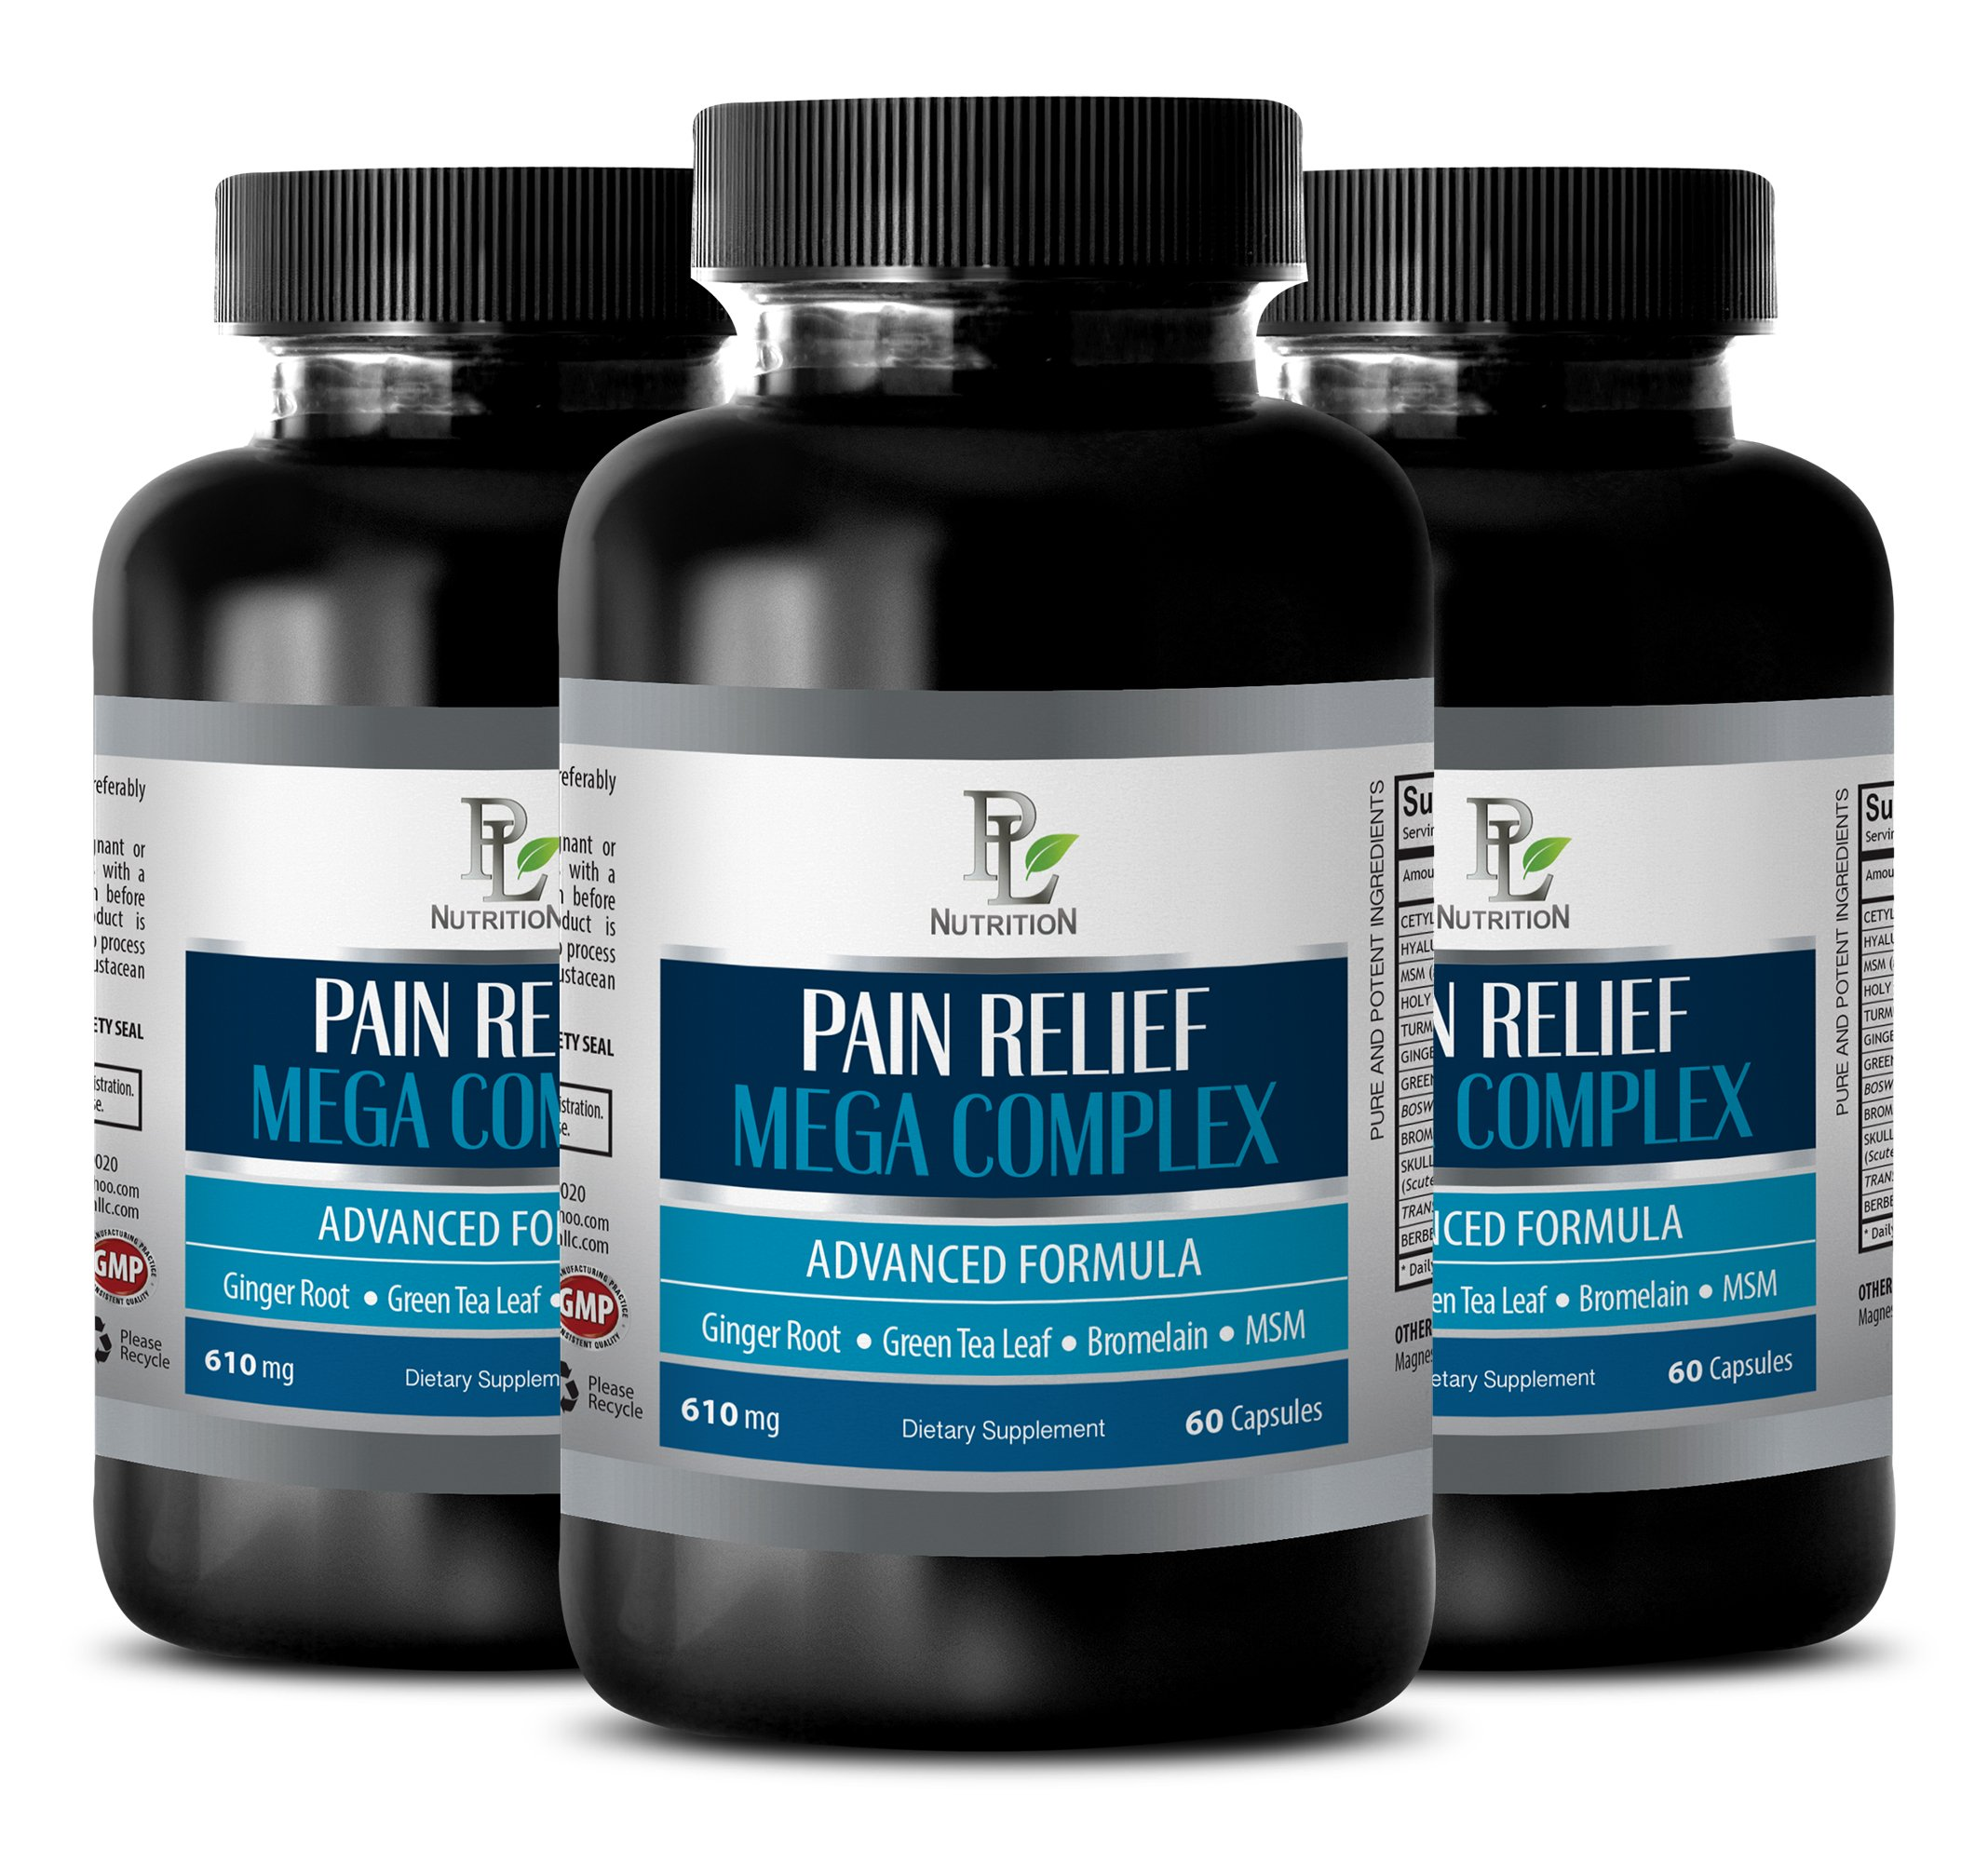 pain quell - PAIN RELIEF MEGA COMPLEX 610MG - holy basil bulk herb - 3 Bottles (180 Capsules)